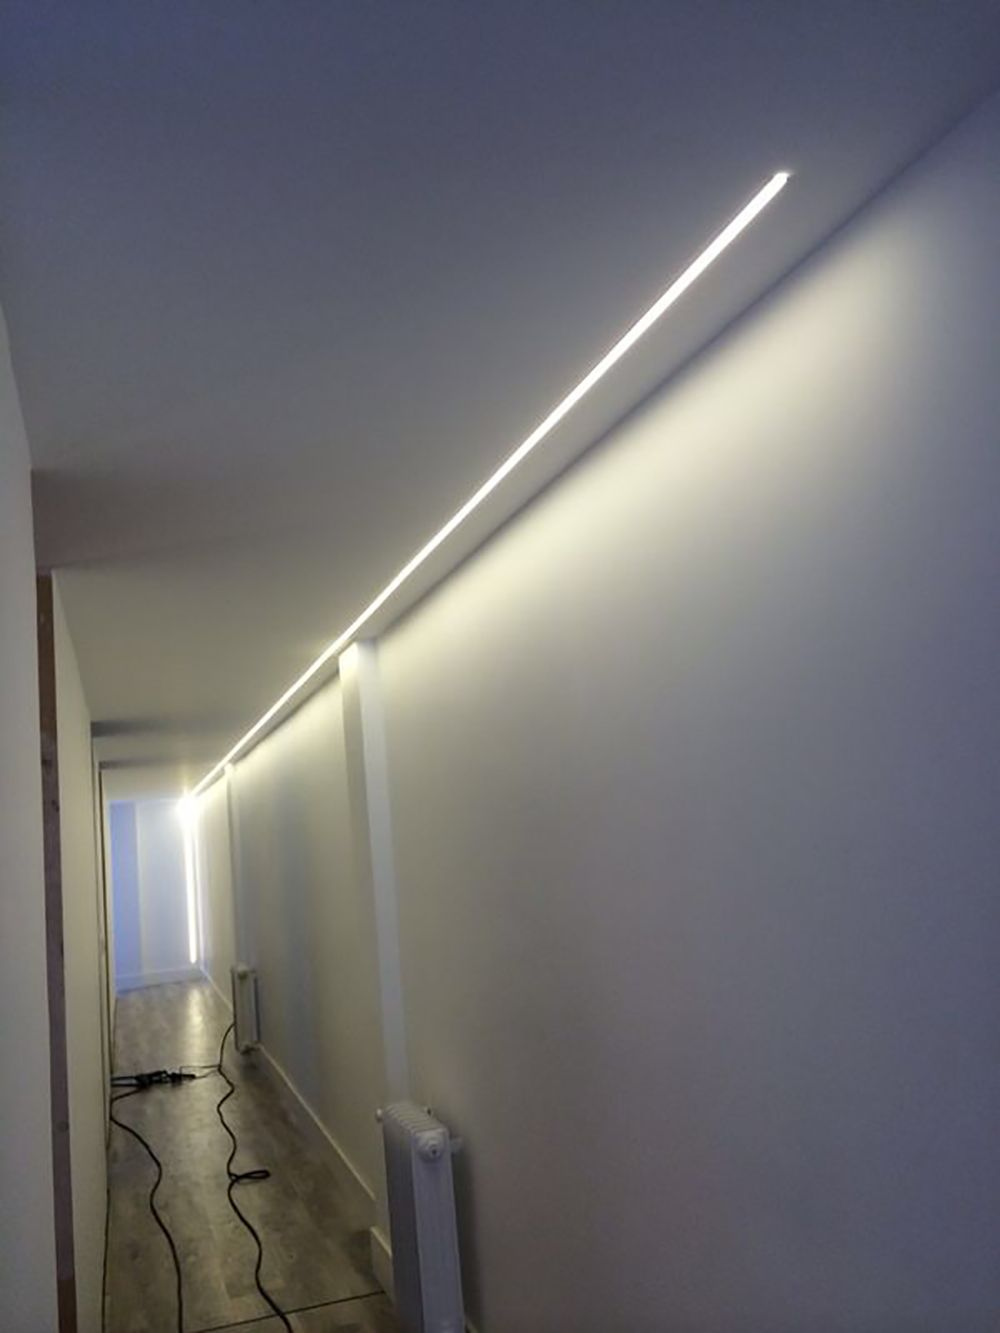 Ideas de decoraci n e iluminaci n con tiras de leds luz for Plafones de pared leroy merlin